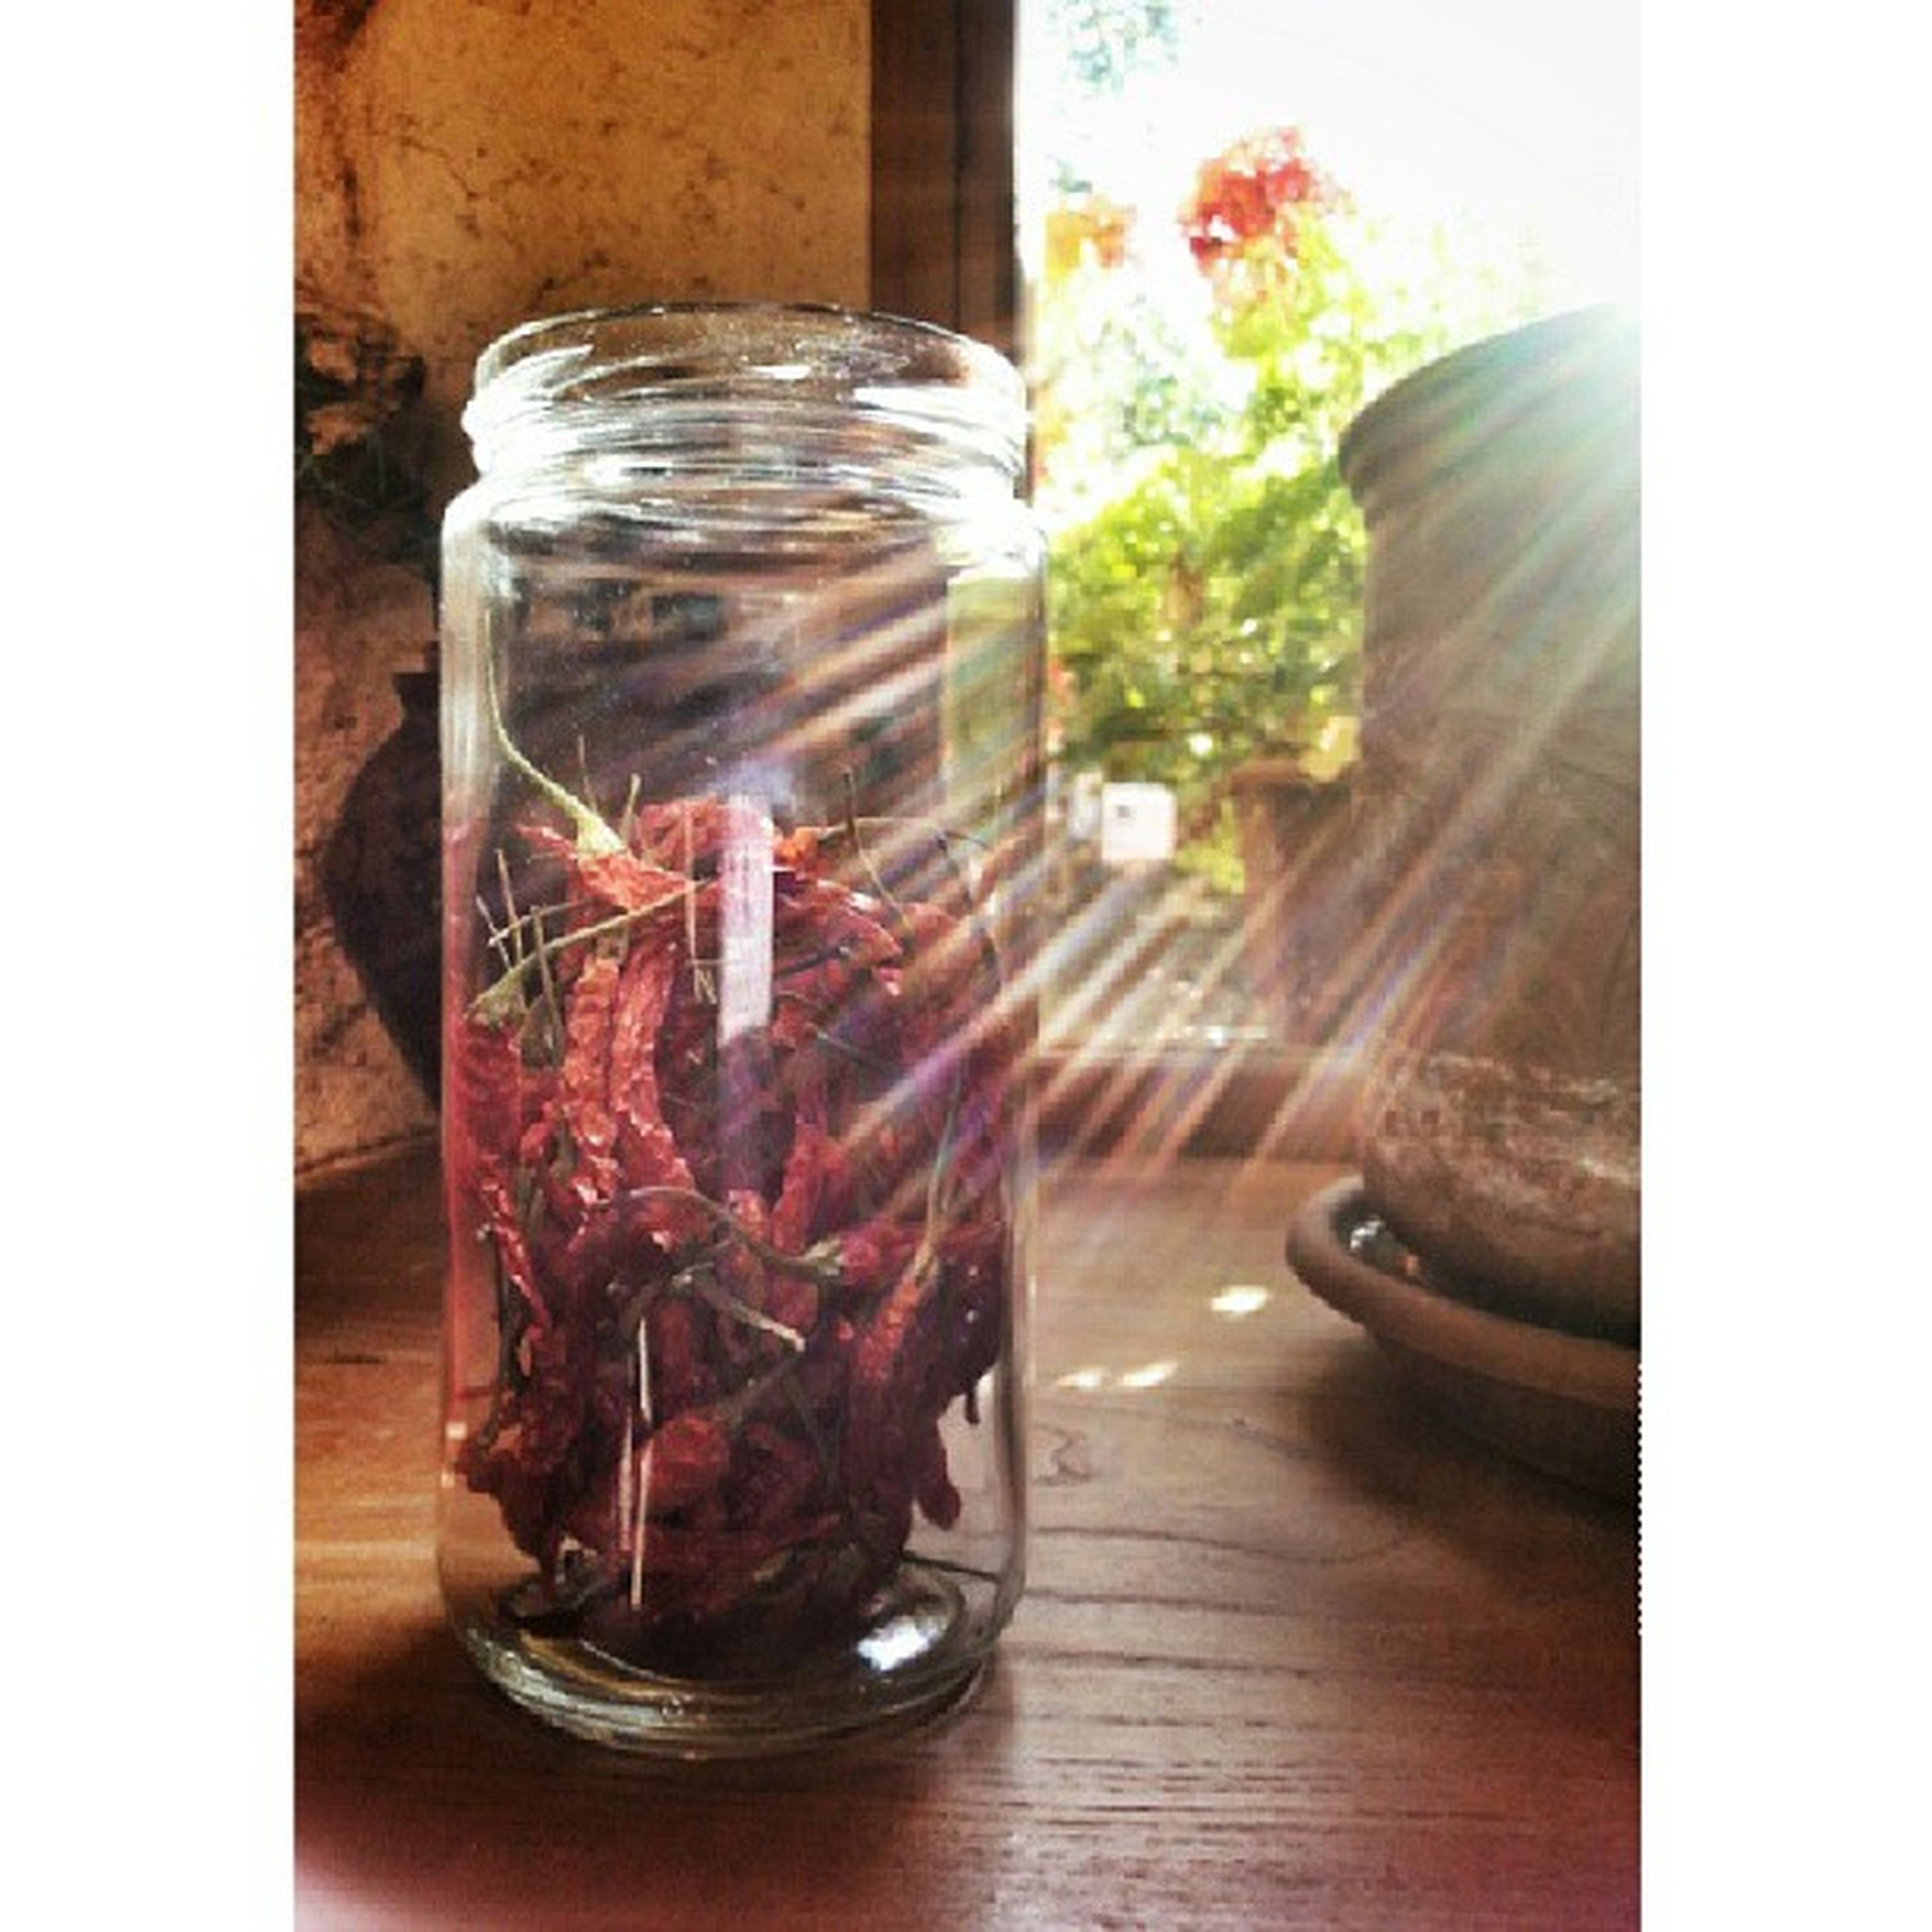 indoors, table, glass - material, drinking glass, drink, freshness, still life, transparent, transfer print, food and drink, refreshment, close-up, glass, flower, auto post production filter, vase, jar, bottle, fragility, no people